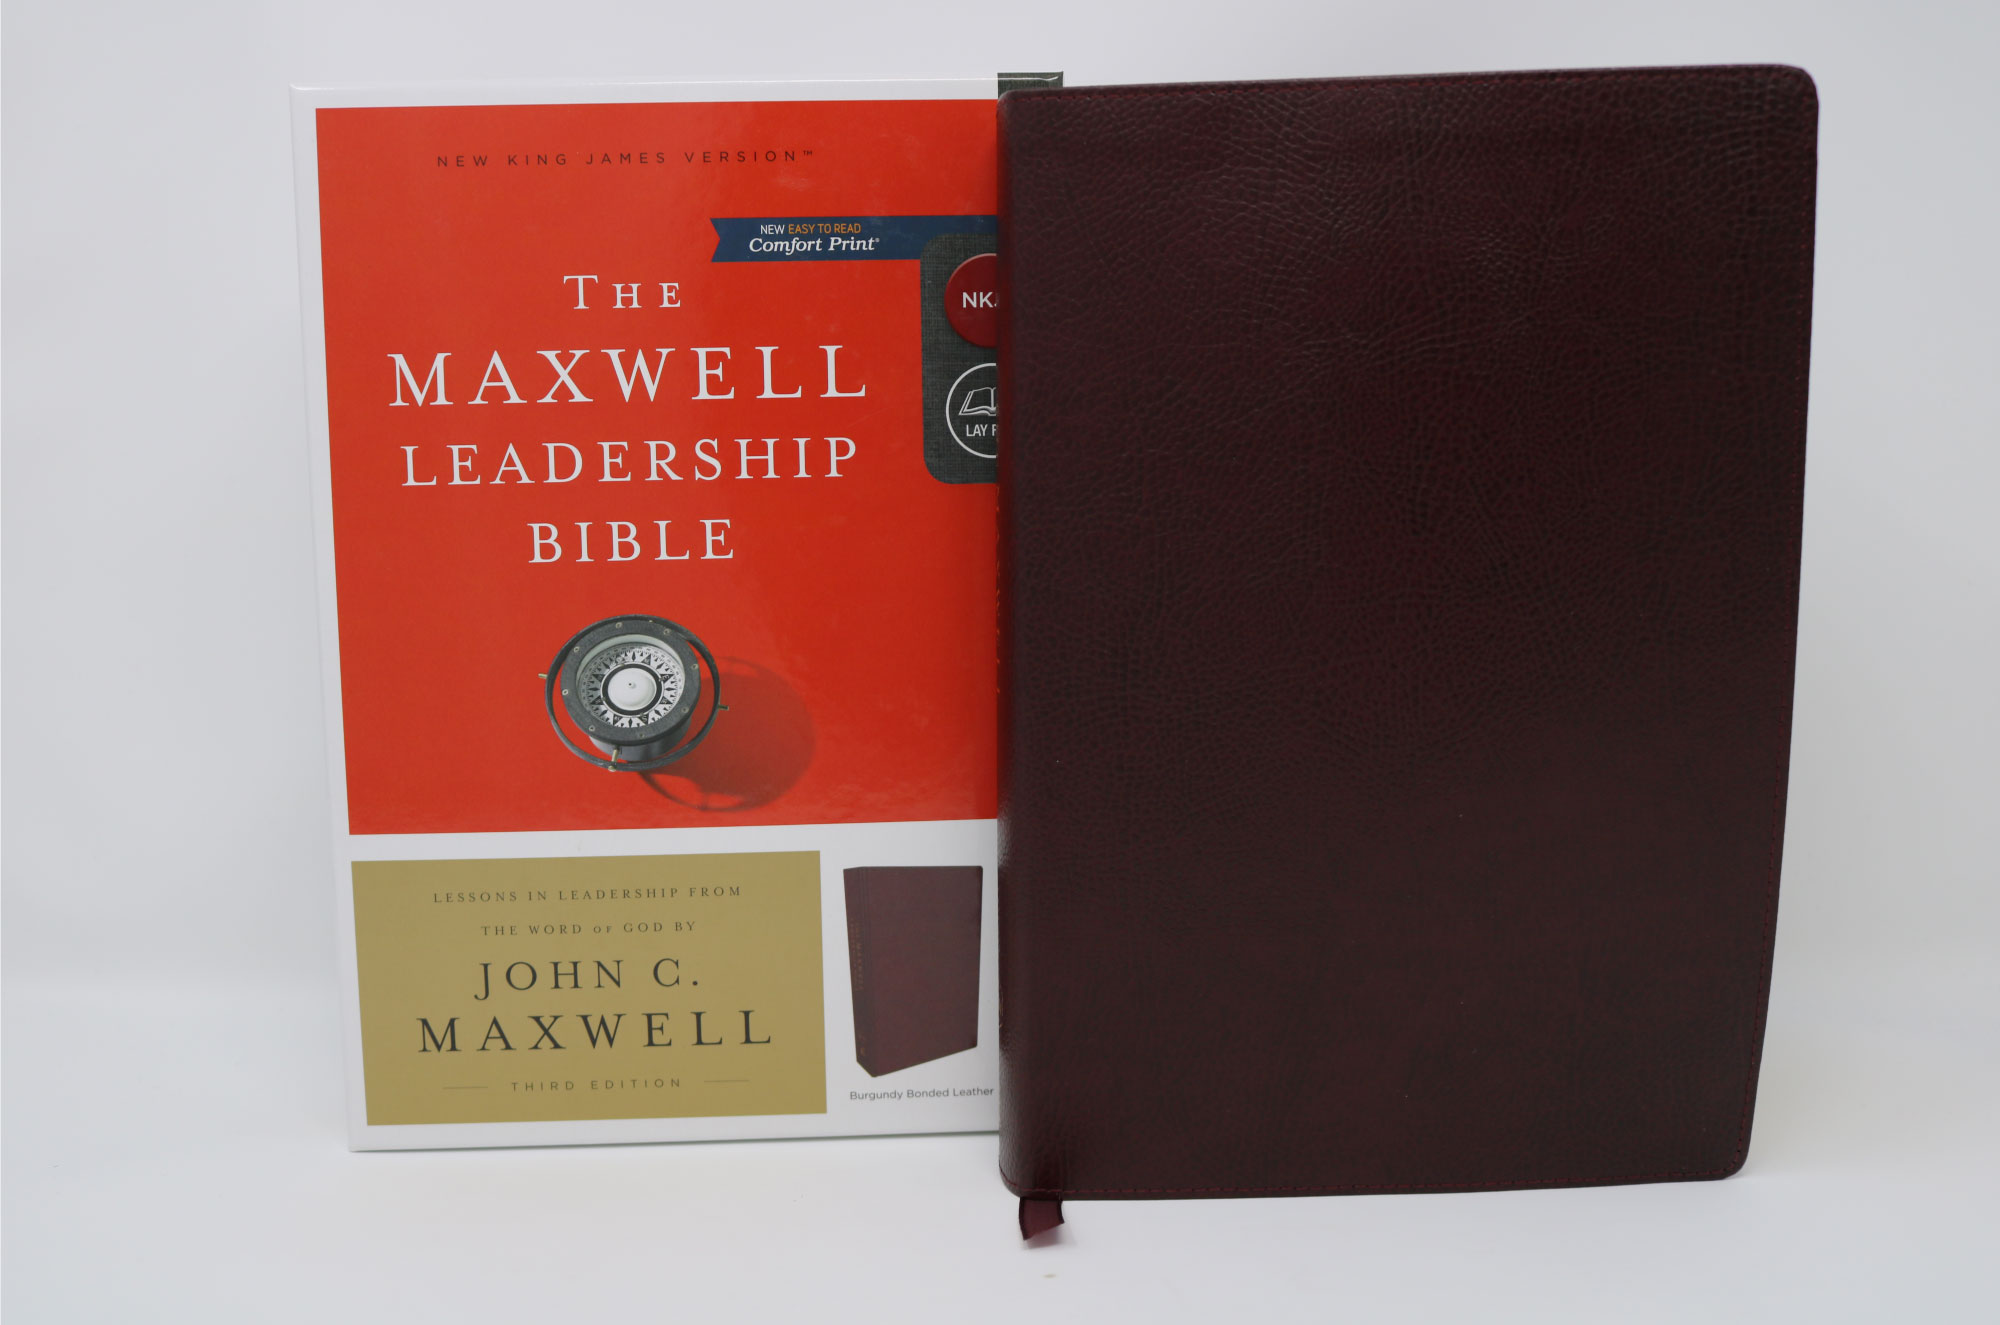 John Maxwell Leadership Bible - NKJV - Third Edition Premium Calfskin Leather, Brown, Comfort Print